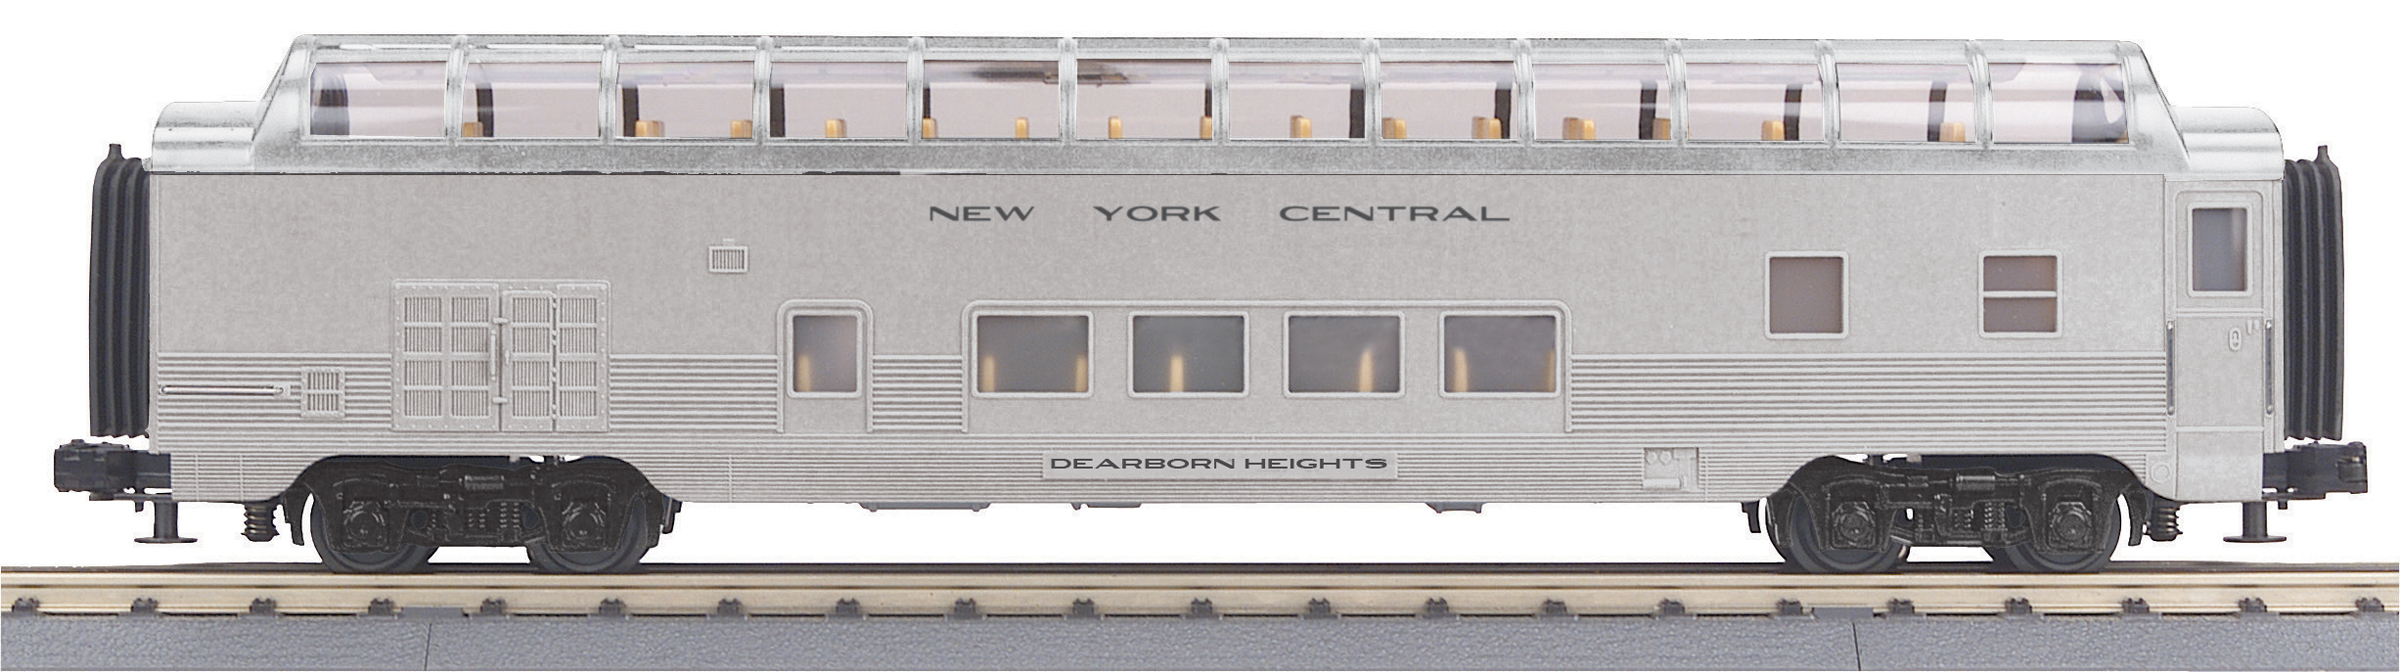 MTH3068061 MTH Electric Trains O-27 60' Streamline Full Vista Dome, NYC